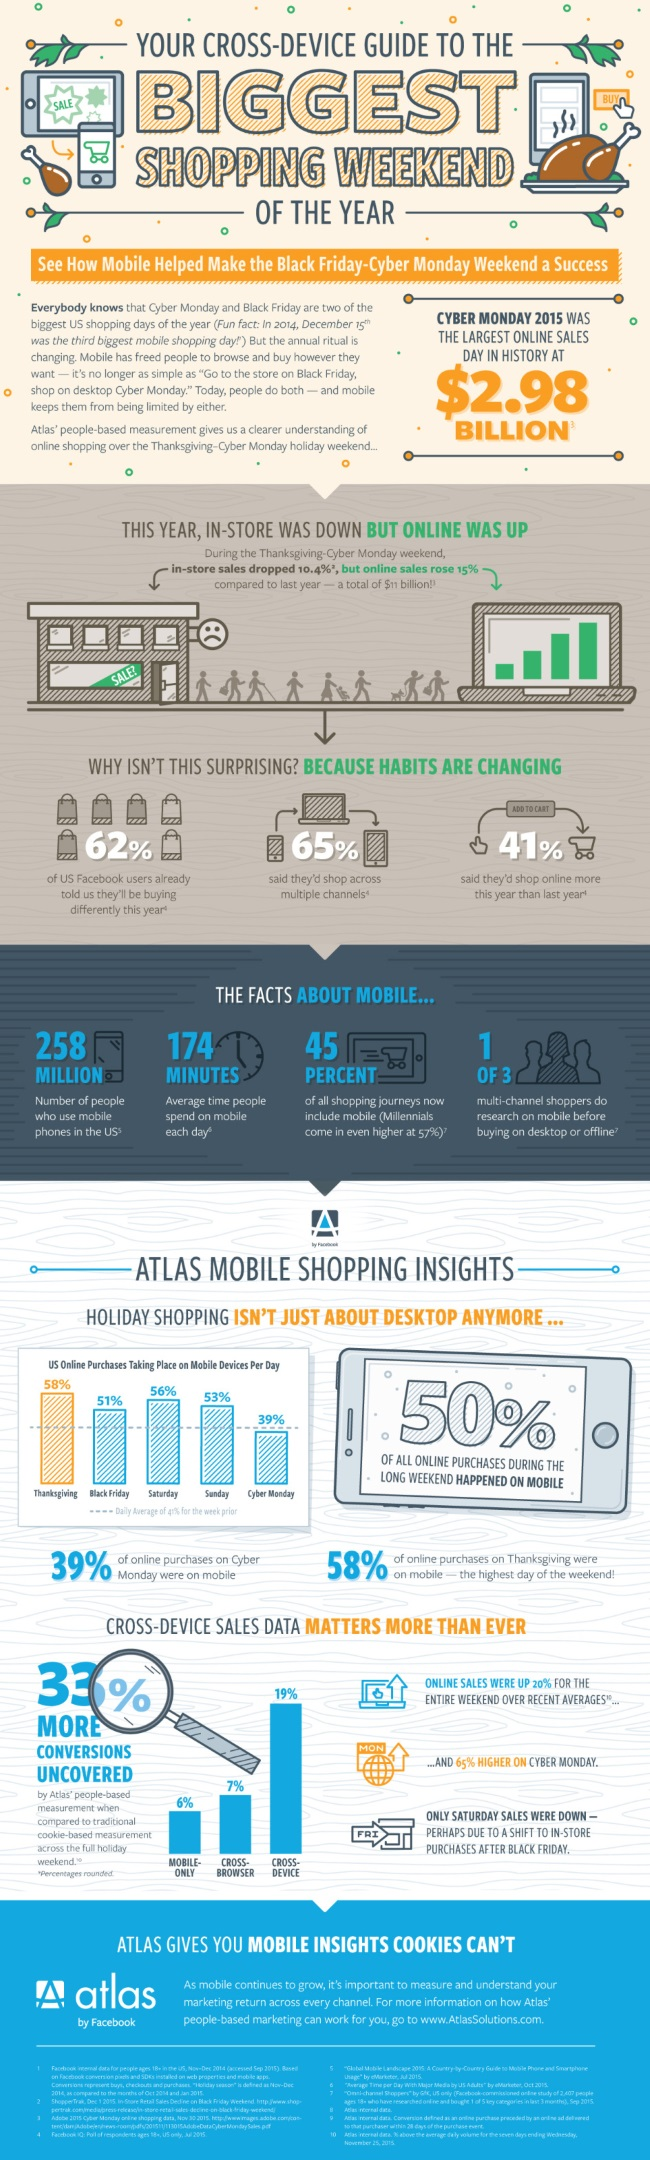 wersm-online-and-mobile-sales-dominated-the-biggest-shopping-weekend-of-the-year